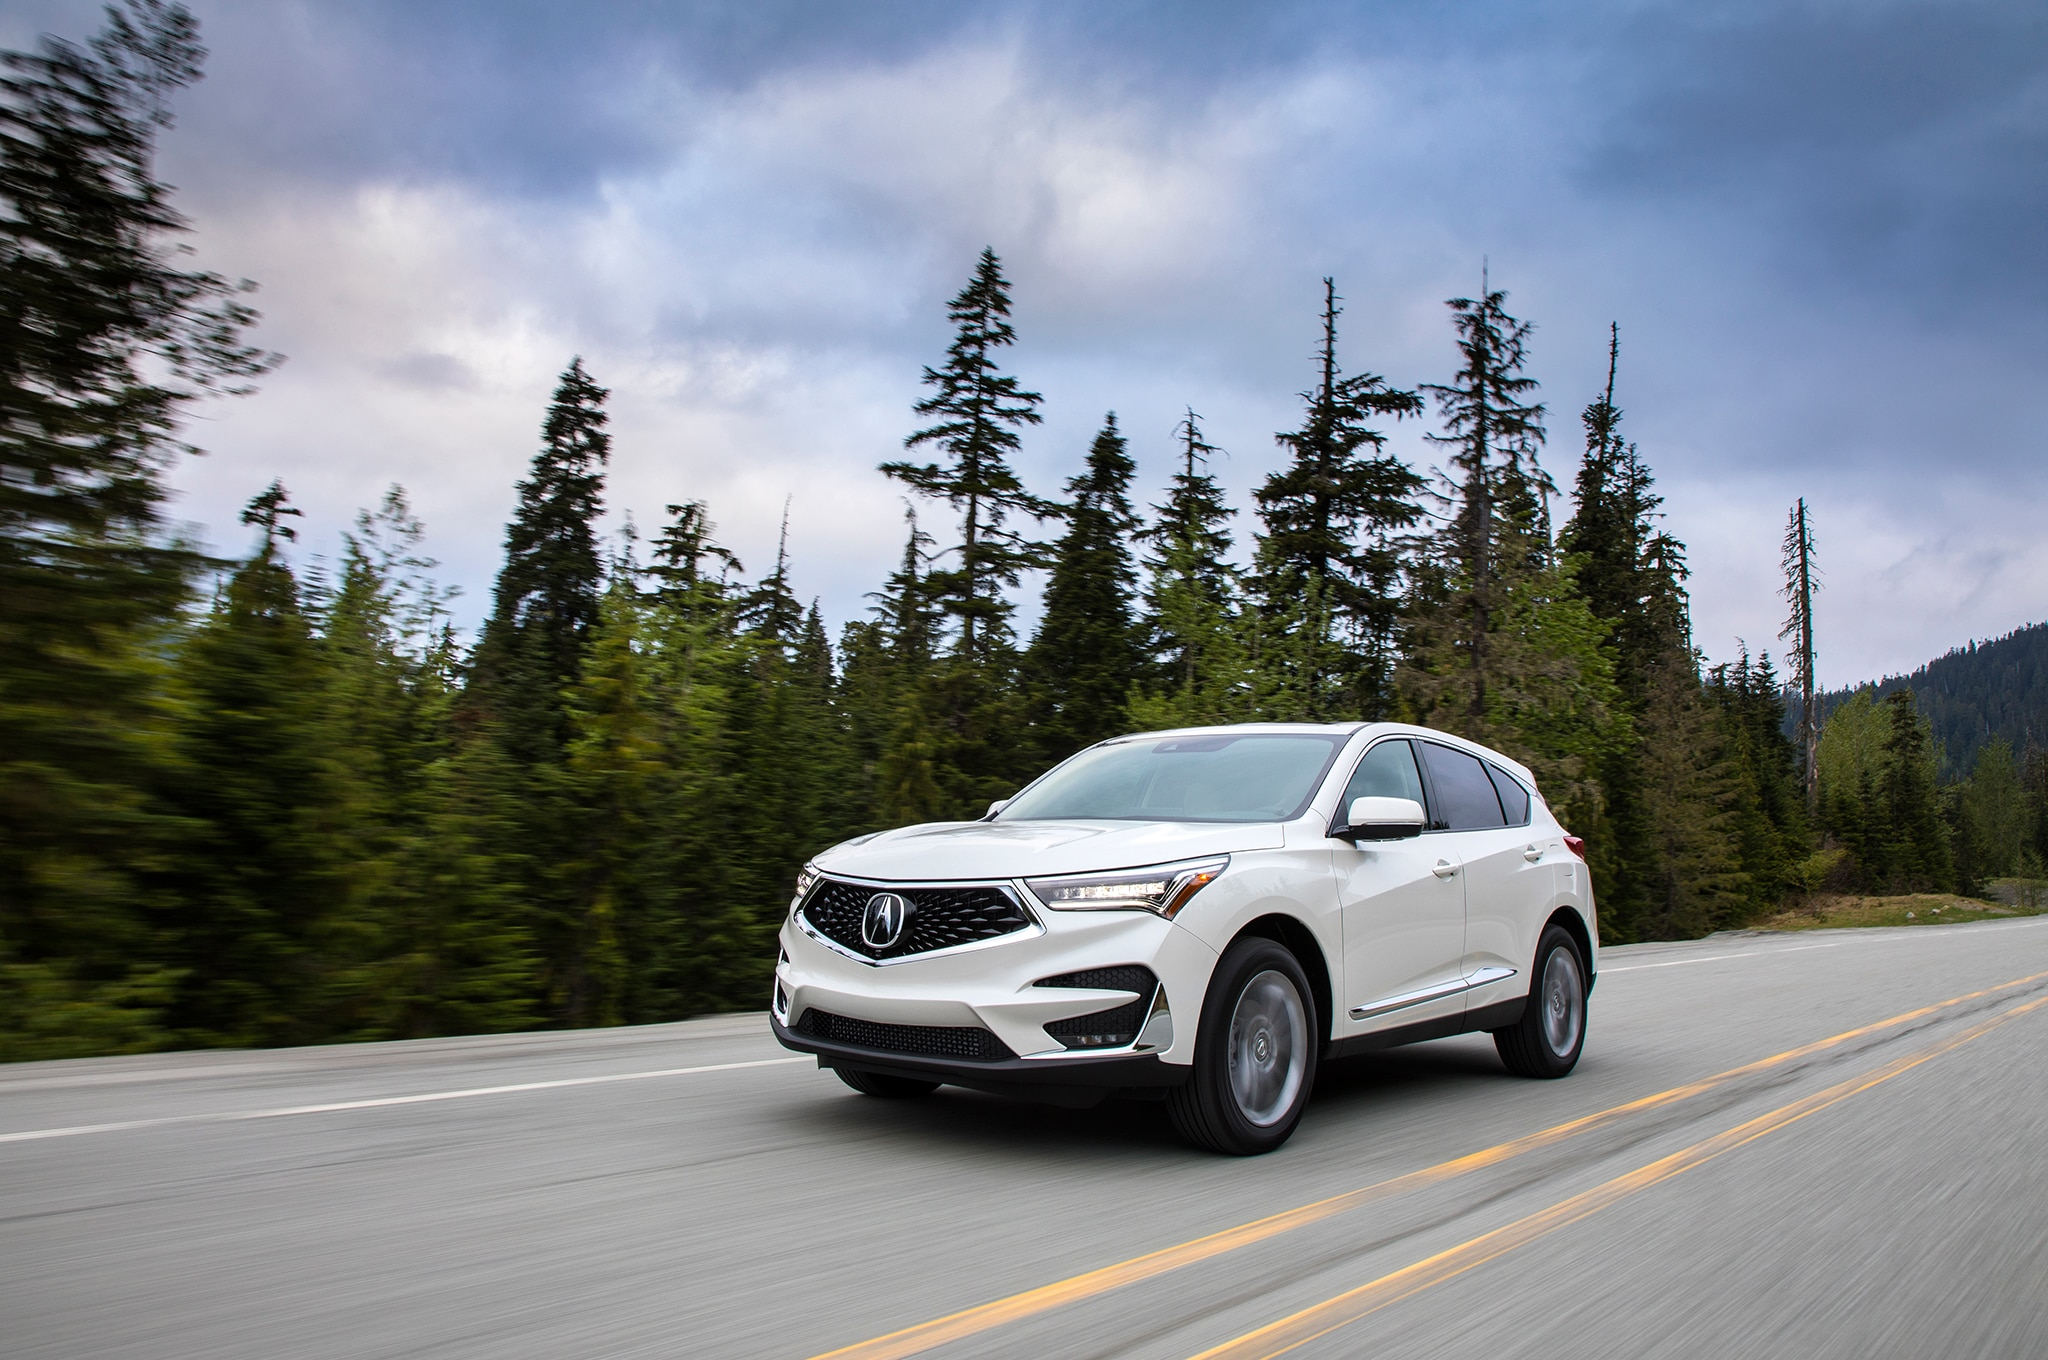 2019 Acura RDX First Drive Review | Automobile Magazine